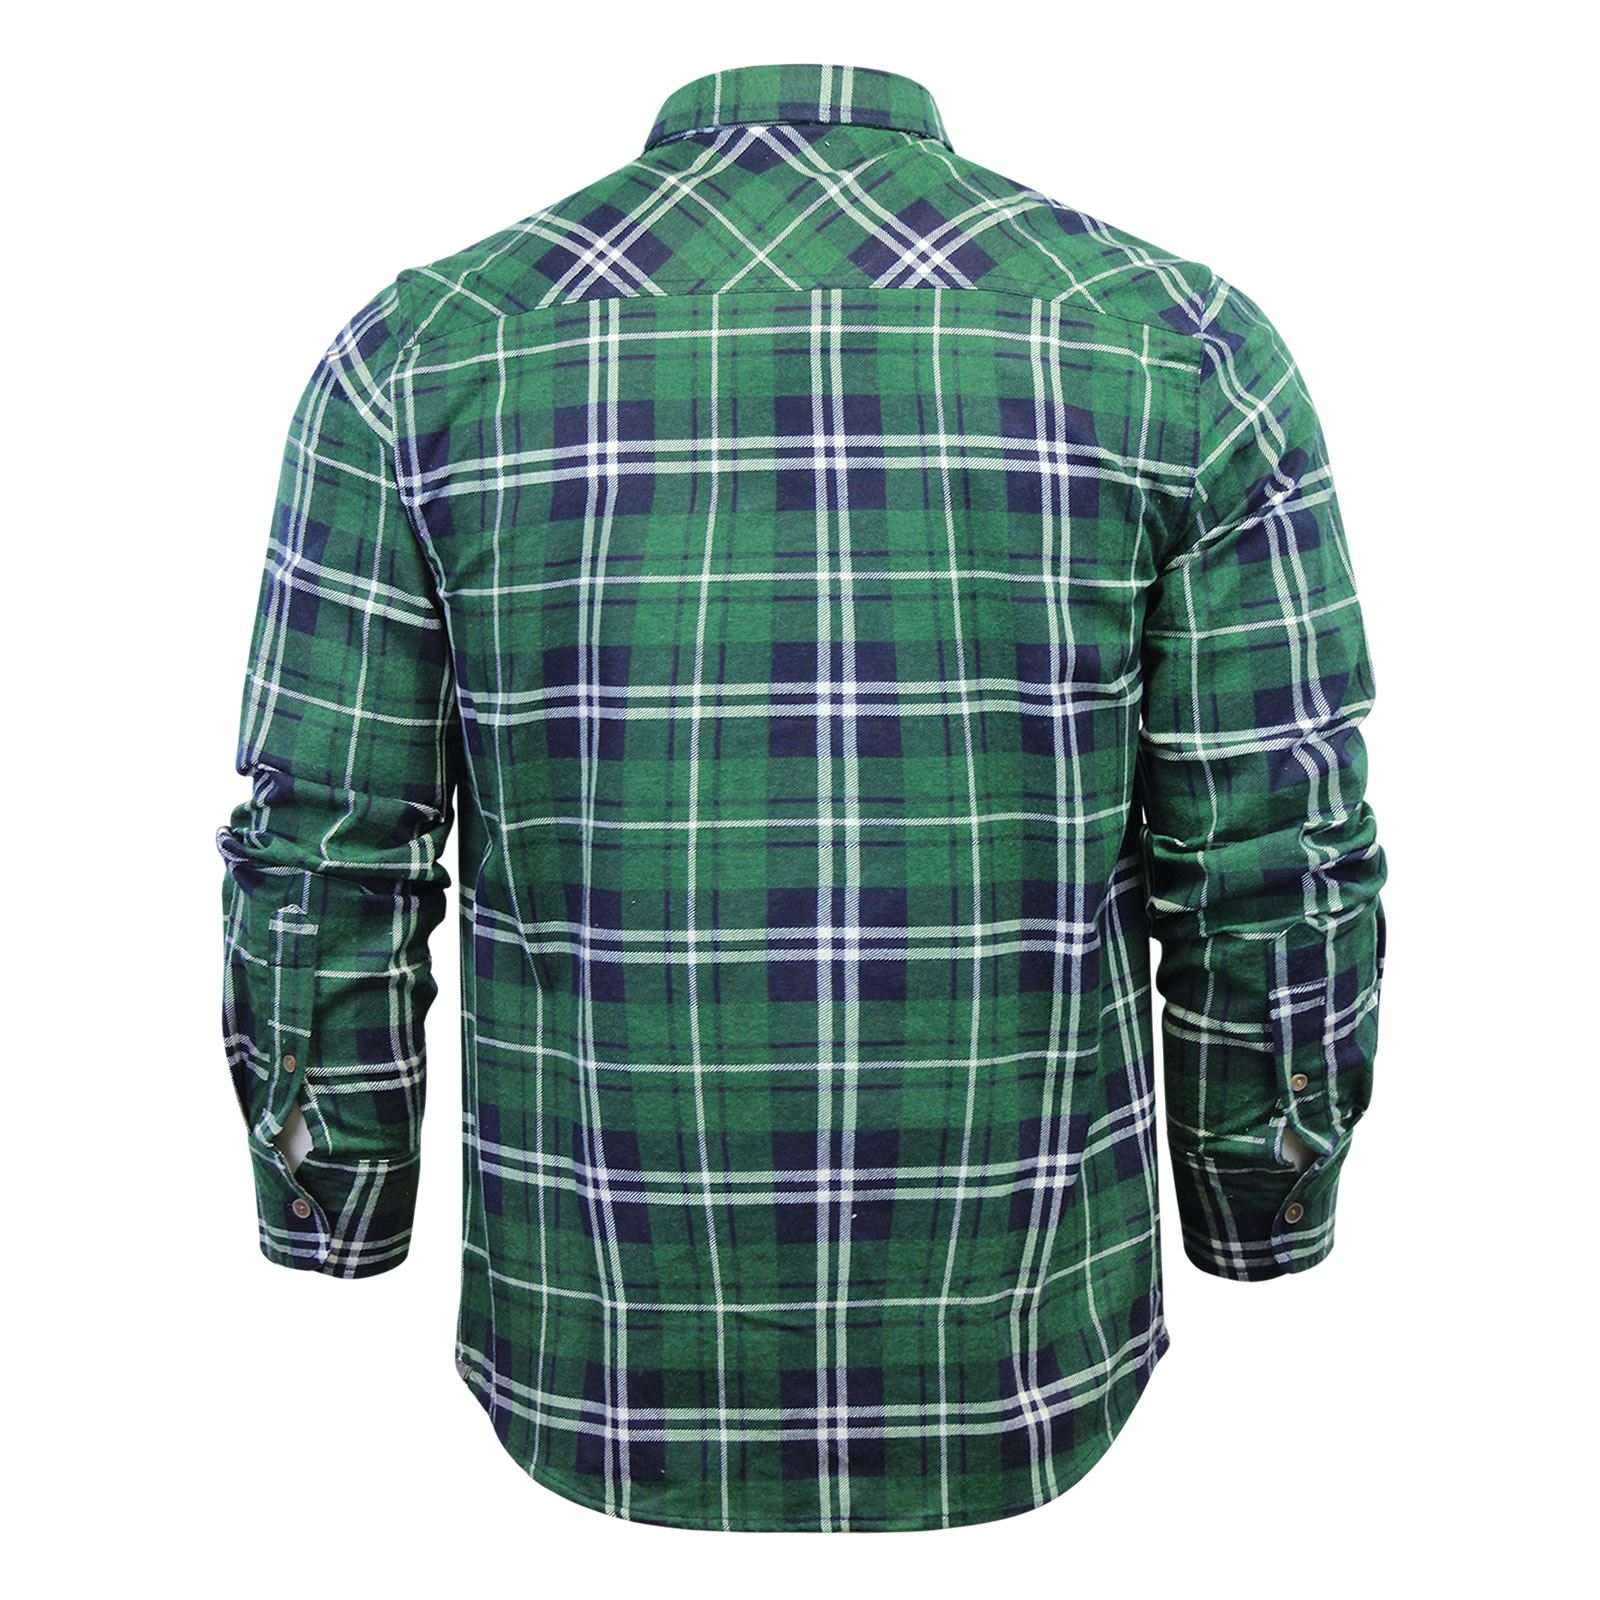 Mens-Check-Shirt-Brave-Soul-Flannel-Brushed-Cotton-Long-Sleeve-Casual-Top thumbnail 87